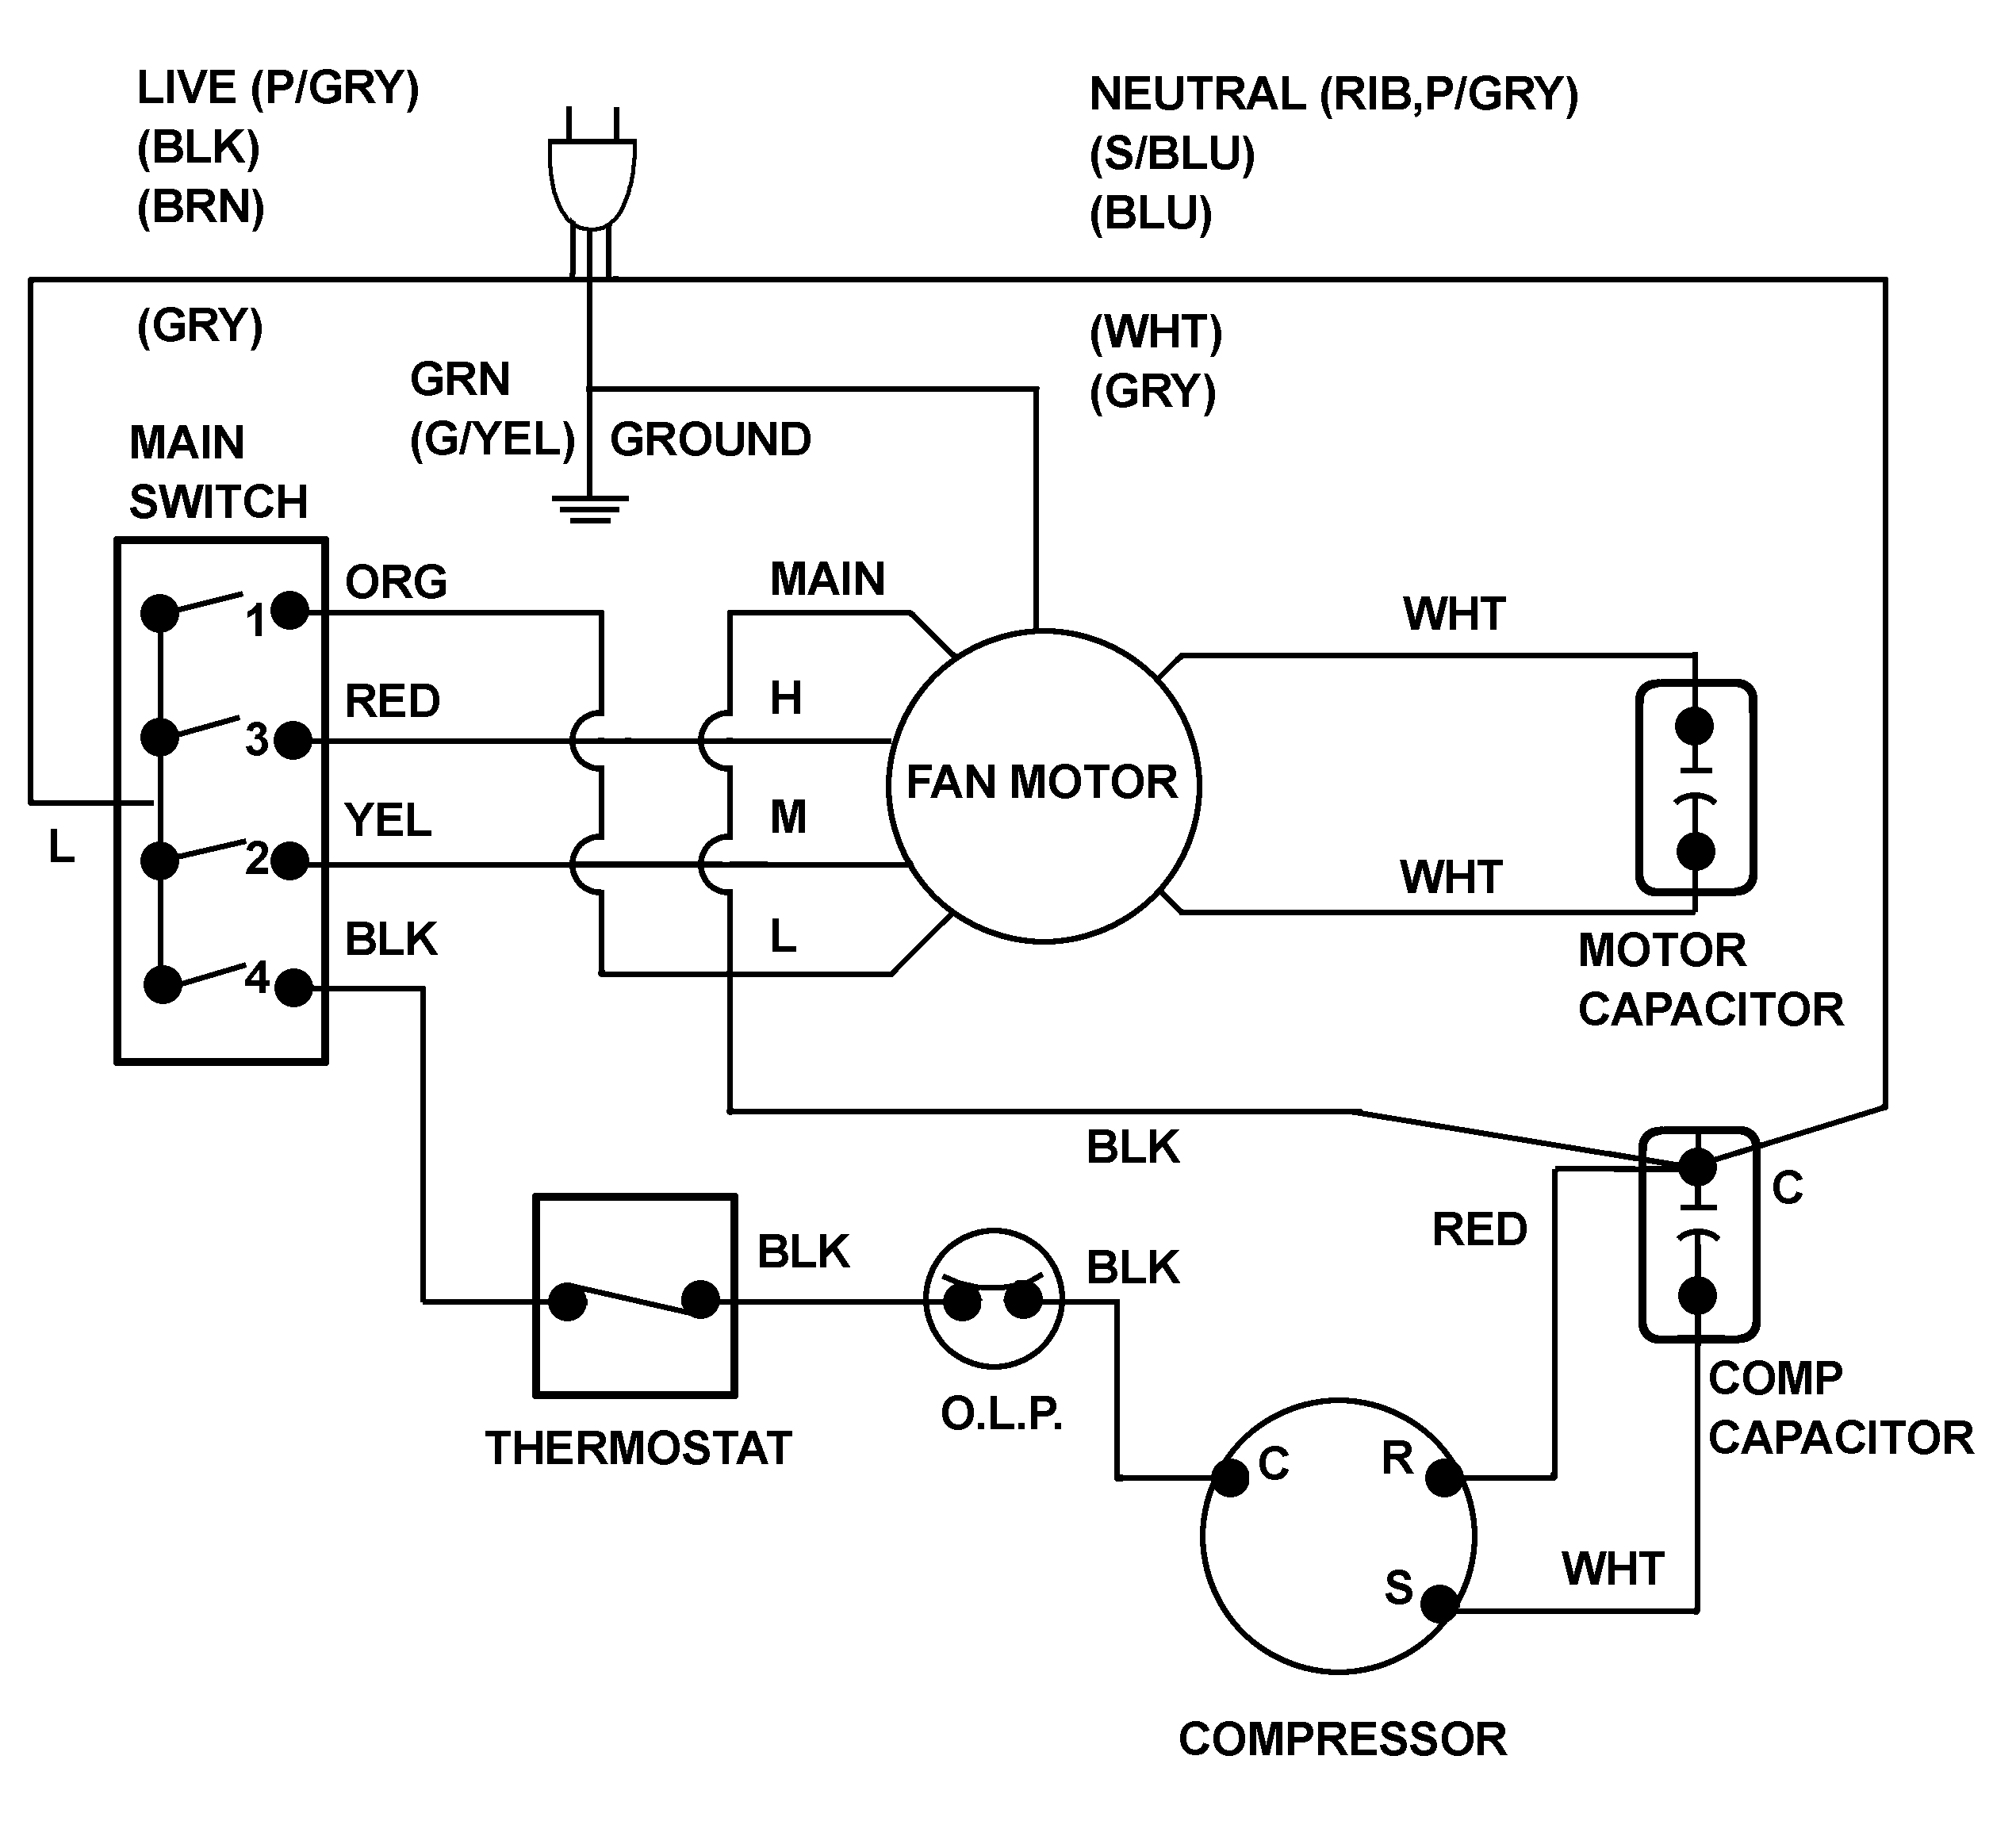 Ac Hvac Wiring - Data Wiring Diagram Today - Nest Thermostat Wiring Diagram Heat And Air Conditioner